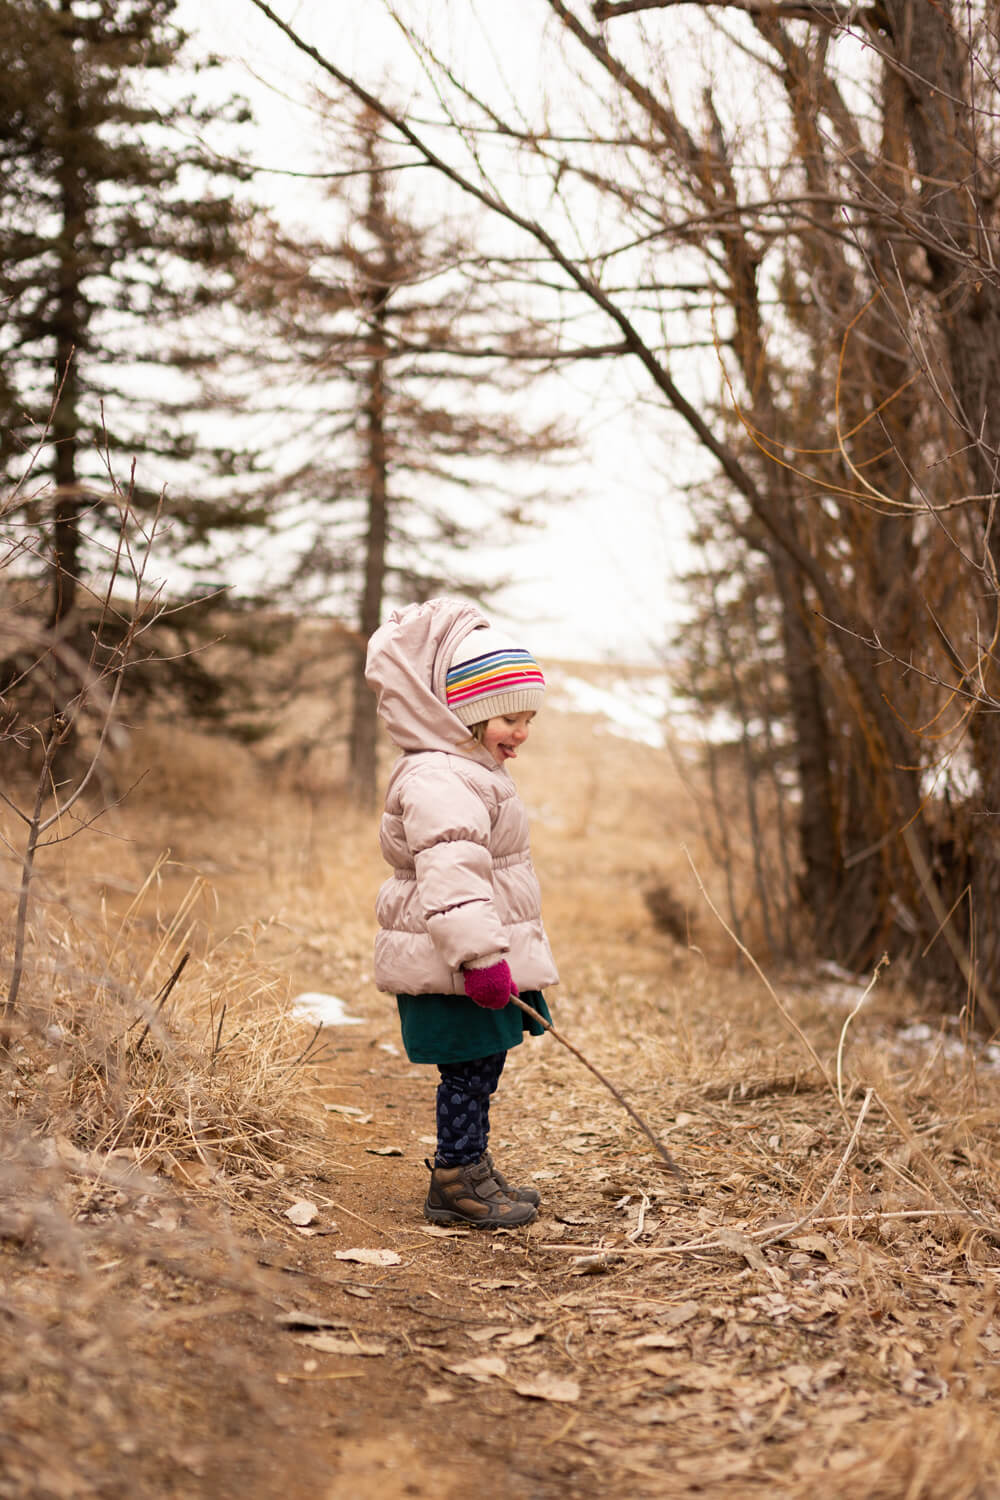 Portrait of a young girl wearing a rainbow striped hat picking up a stick